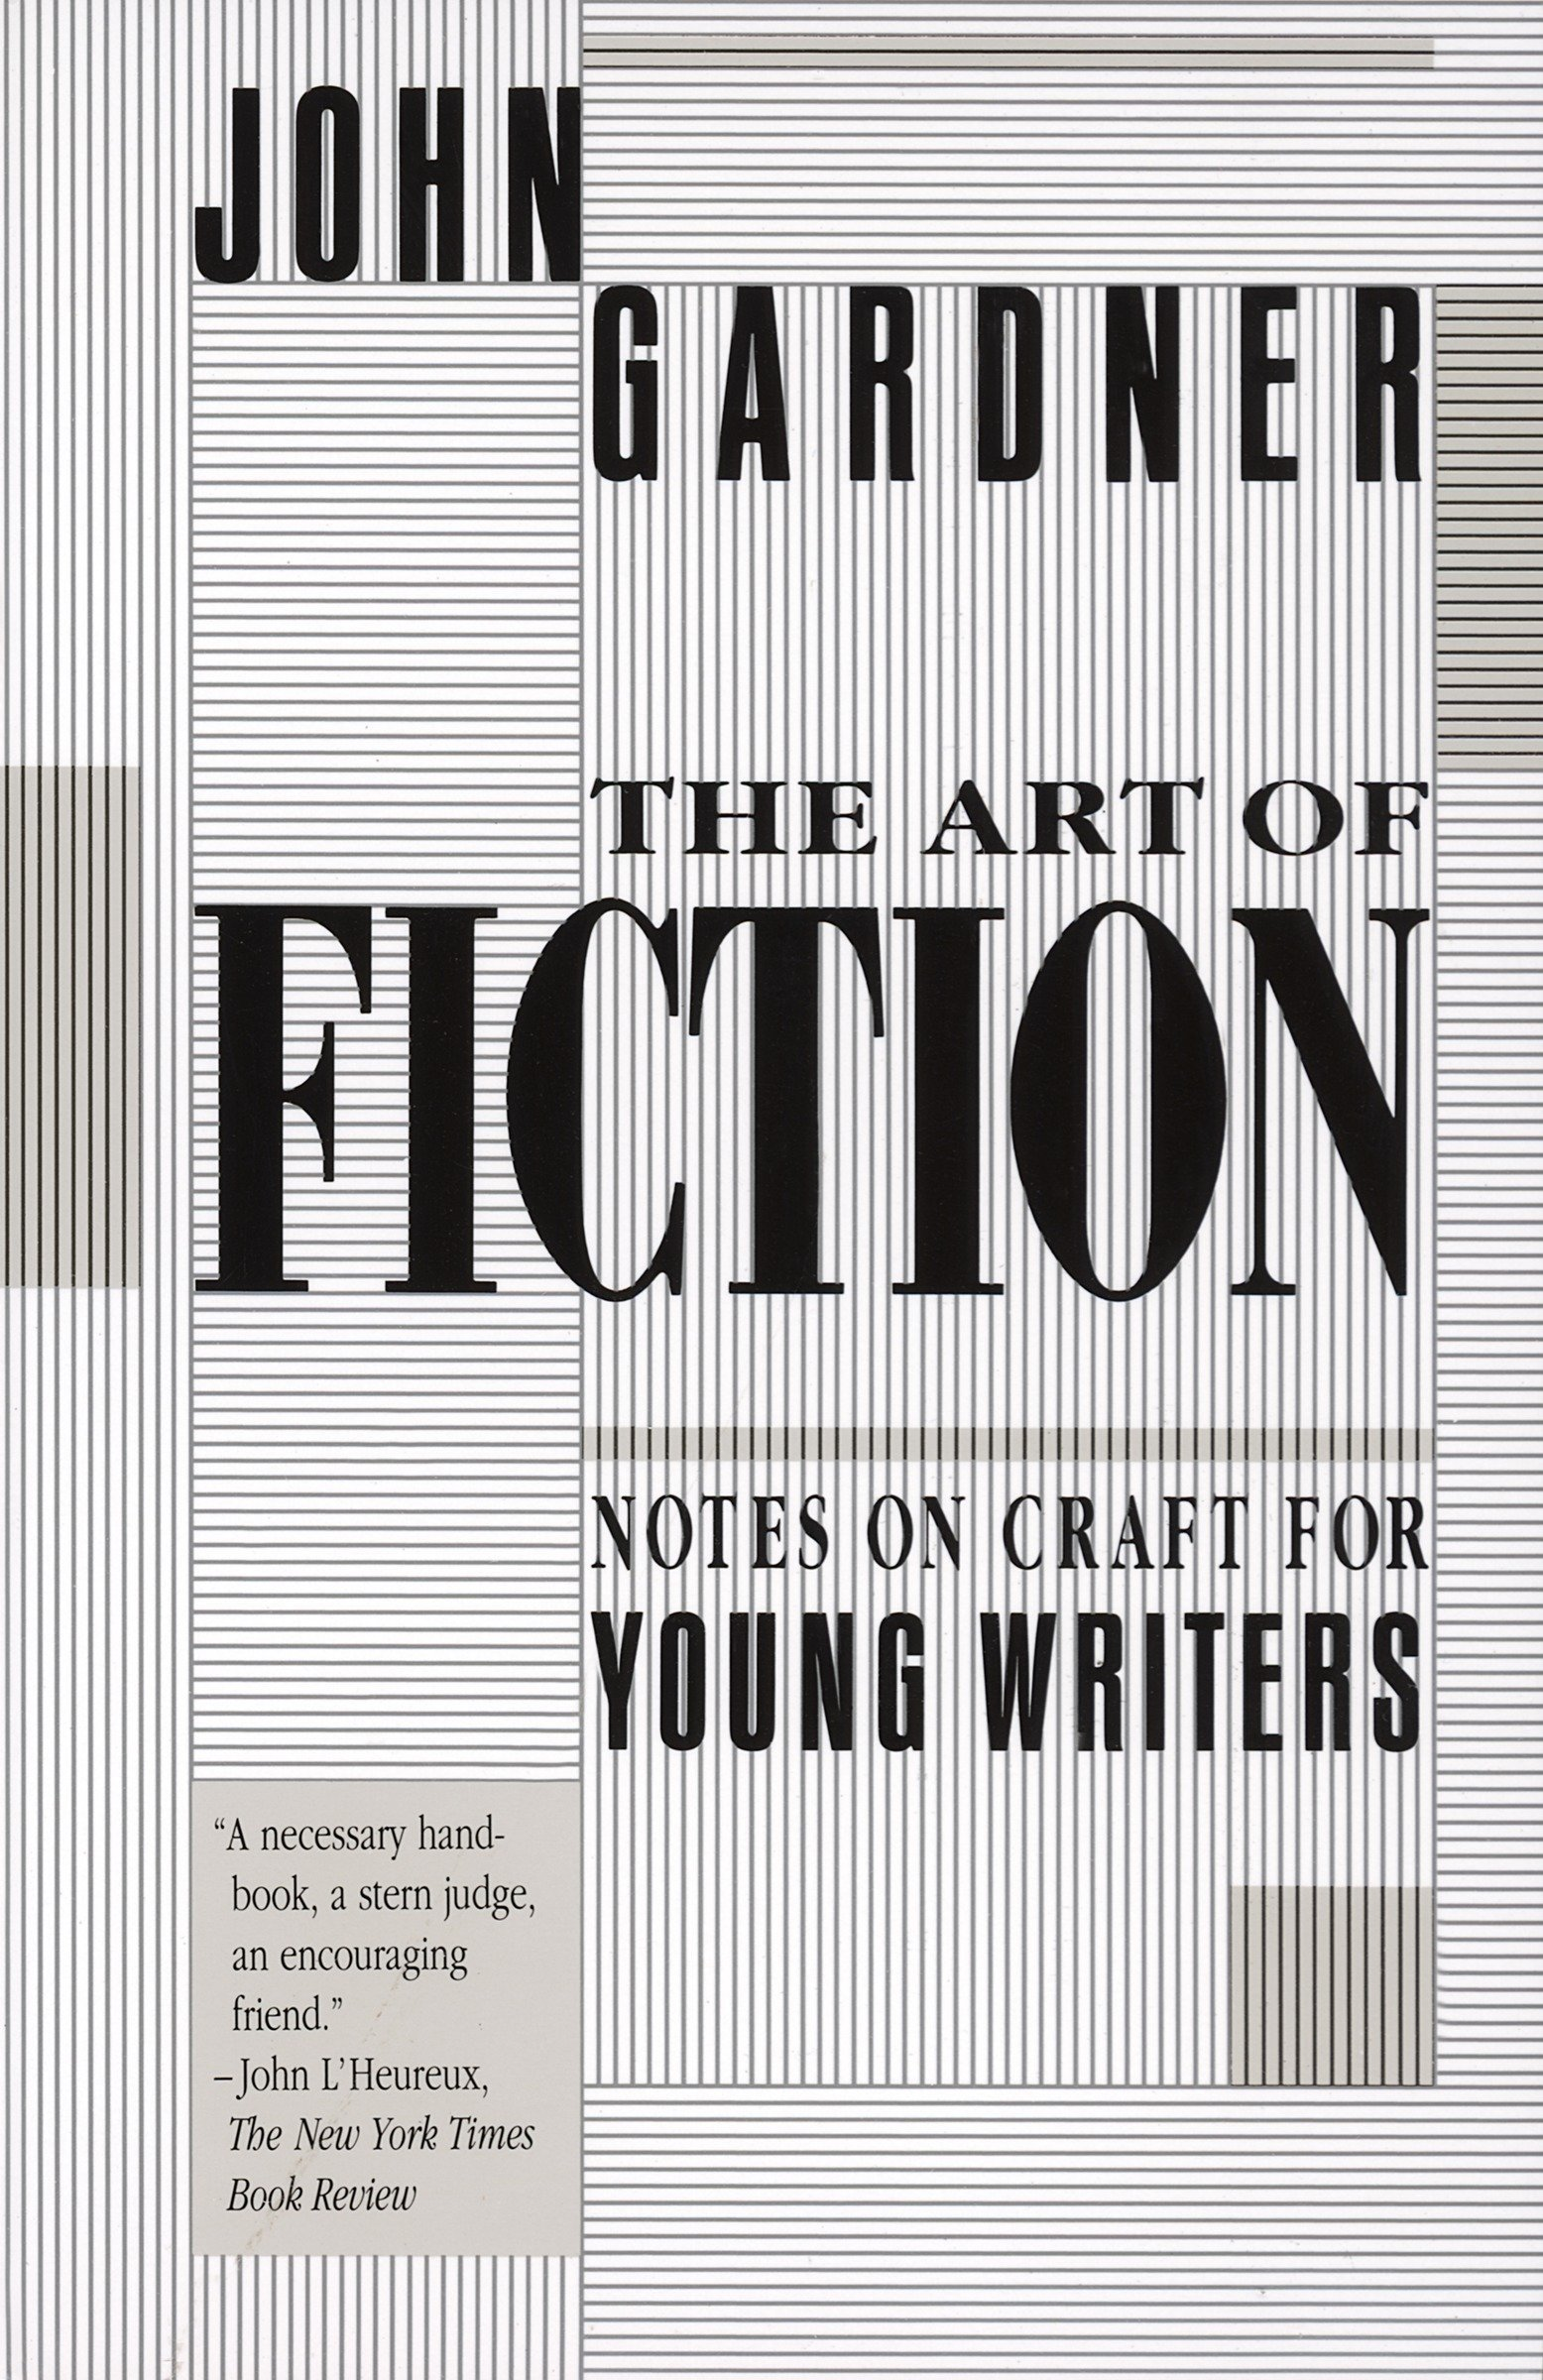 Five literary masterpieces of young writers